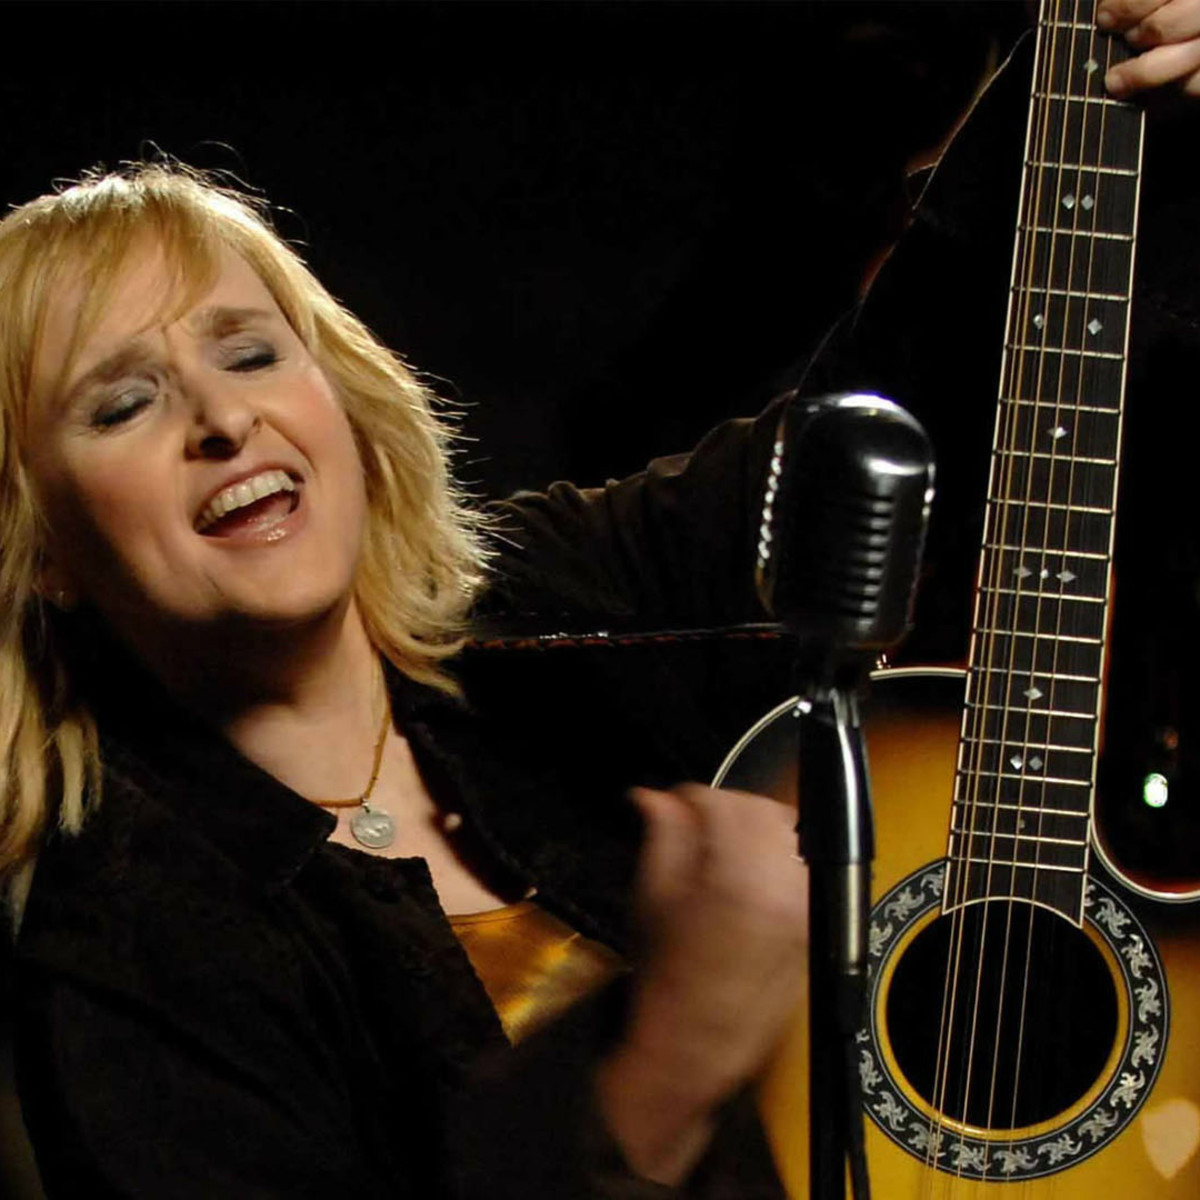 Hoffman Melissa Etheridge